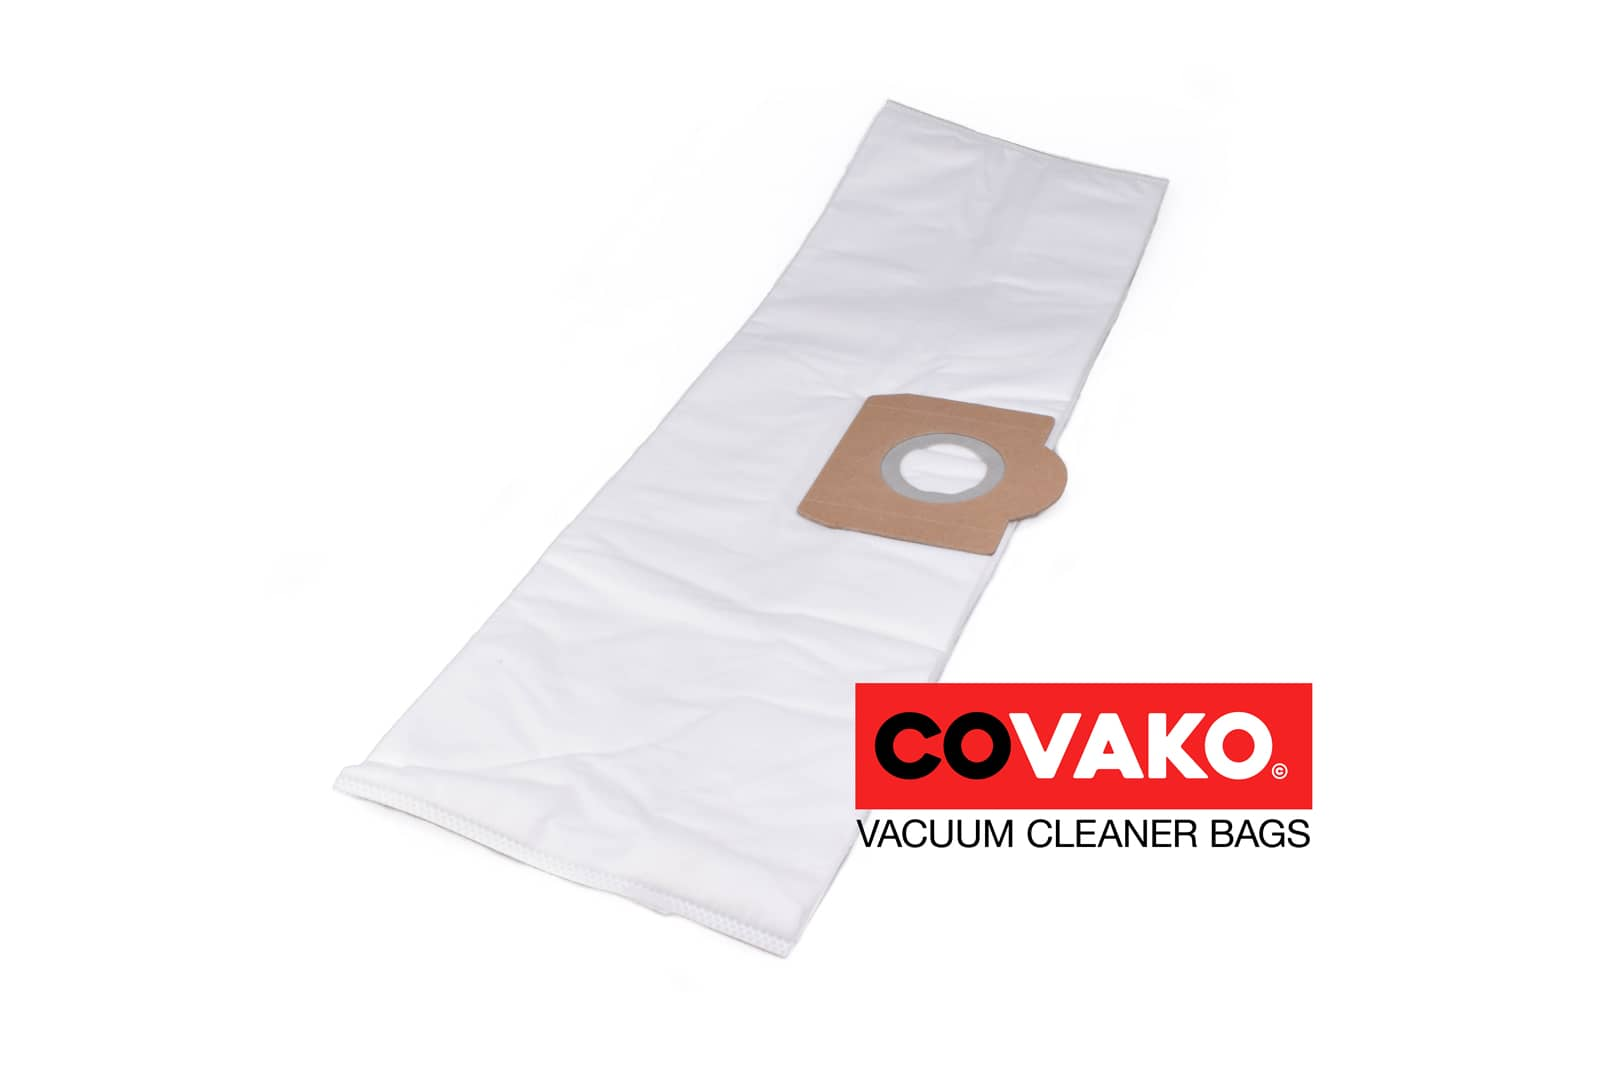 Bosch PAS 11-21 / Synthesis - Bosch vacuum cleaner bags